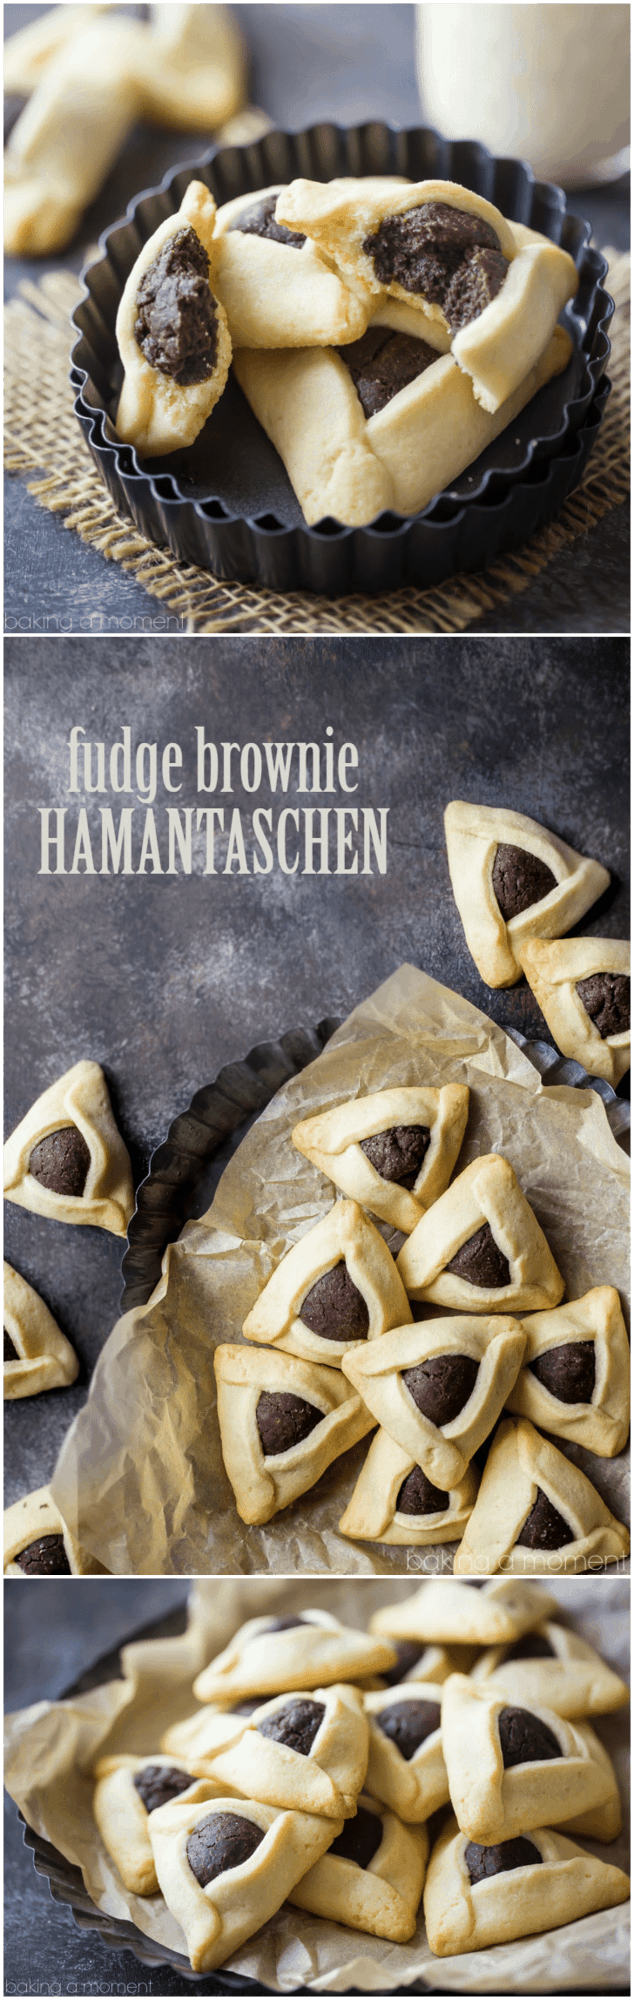 Fudge Brownie Hamantaschen- Little pillows of fudge-y chocolate brownie filling, surrounded by a butter-y sugar cookie.  food recipes purim cookies